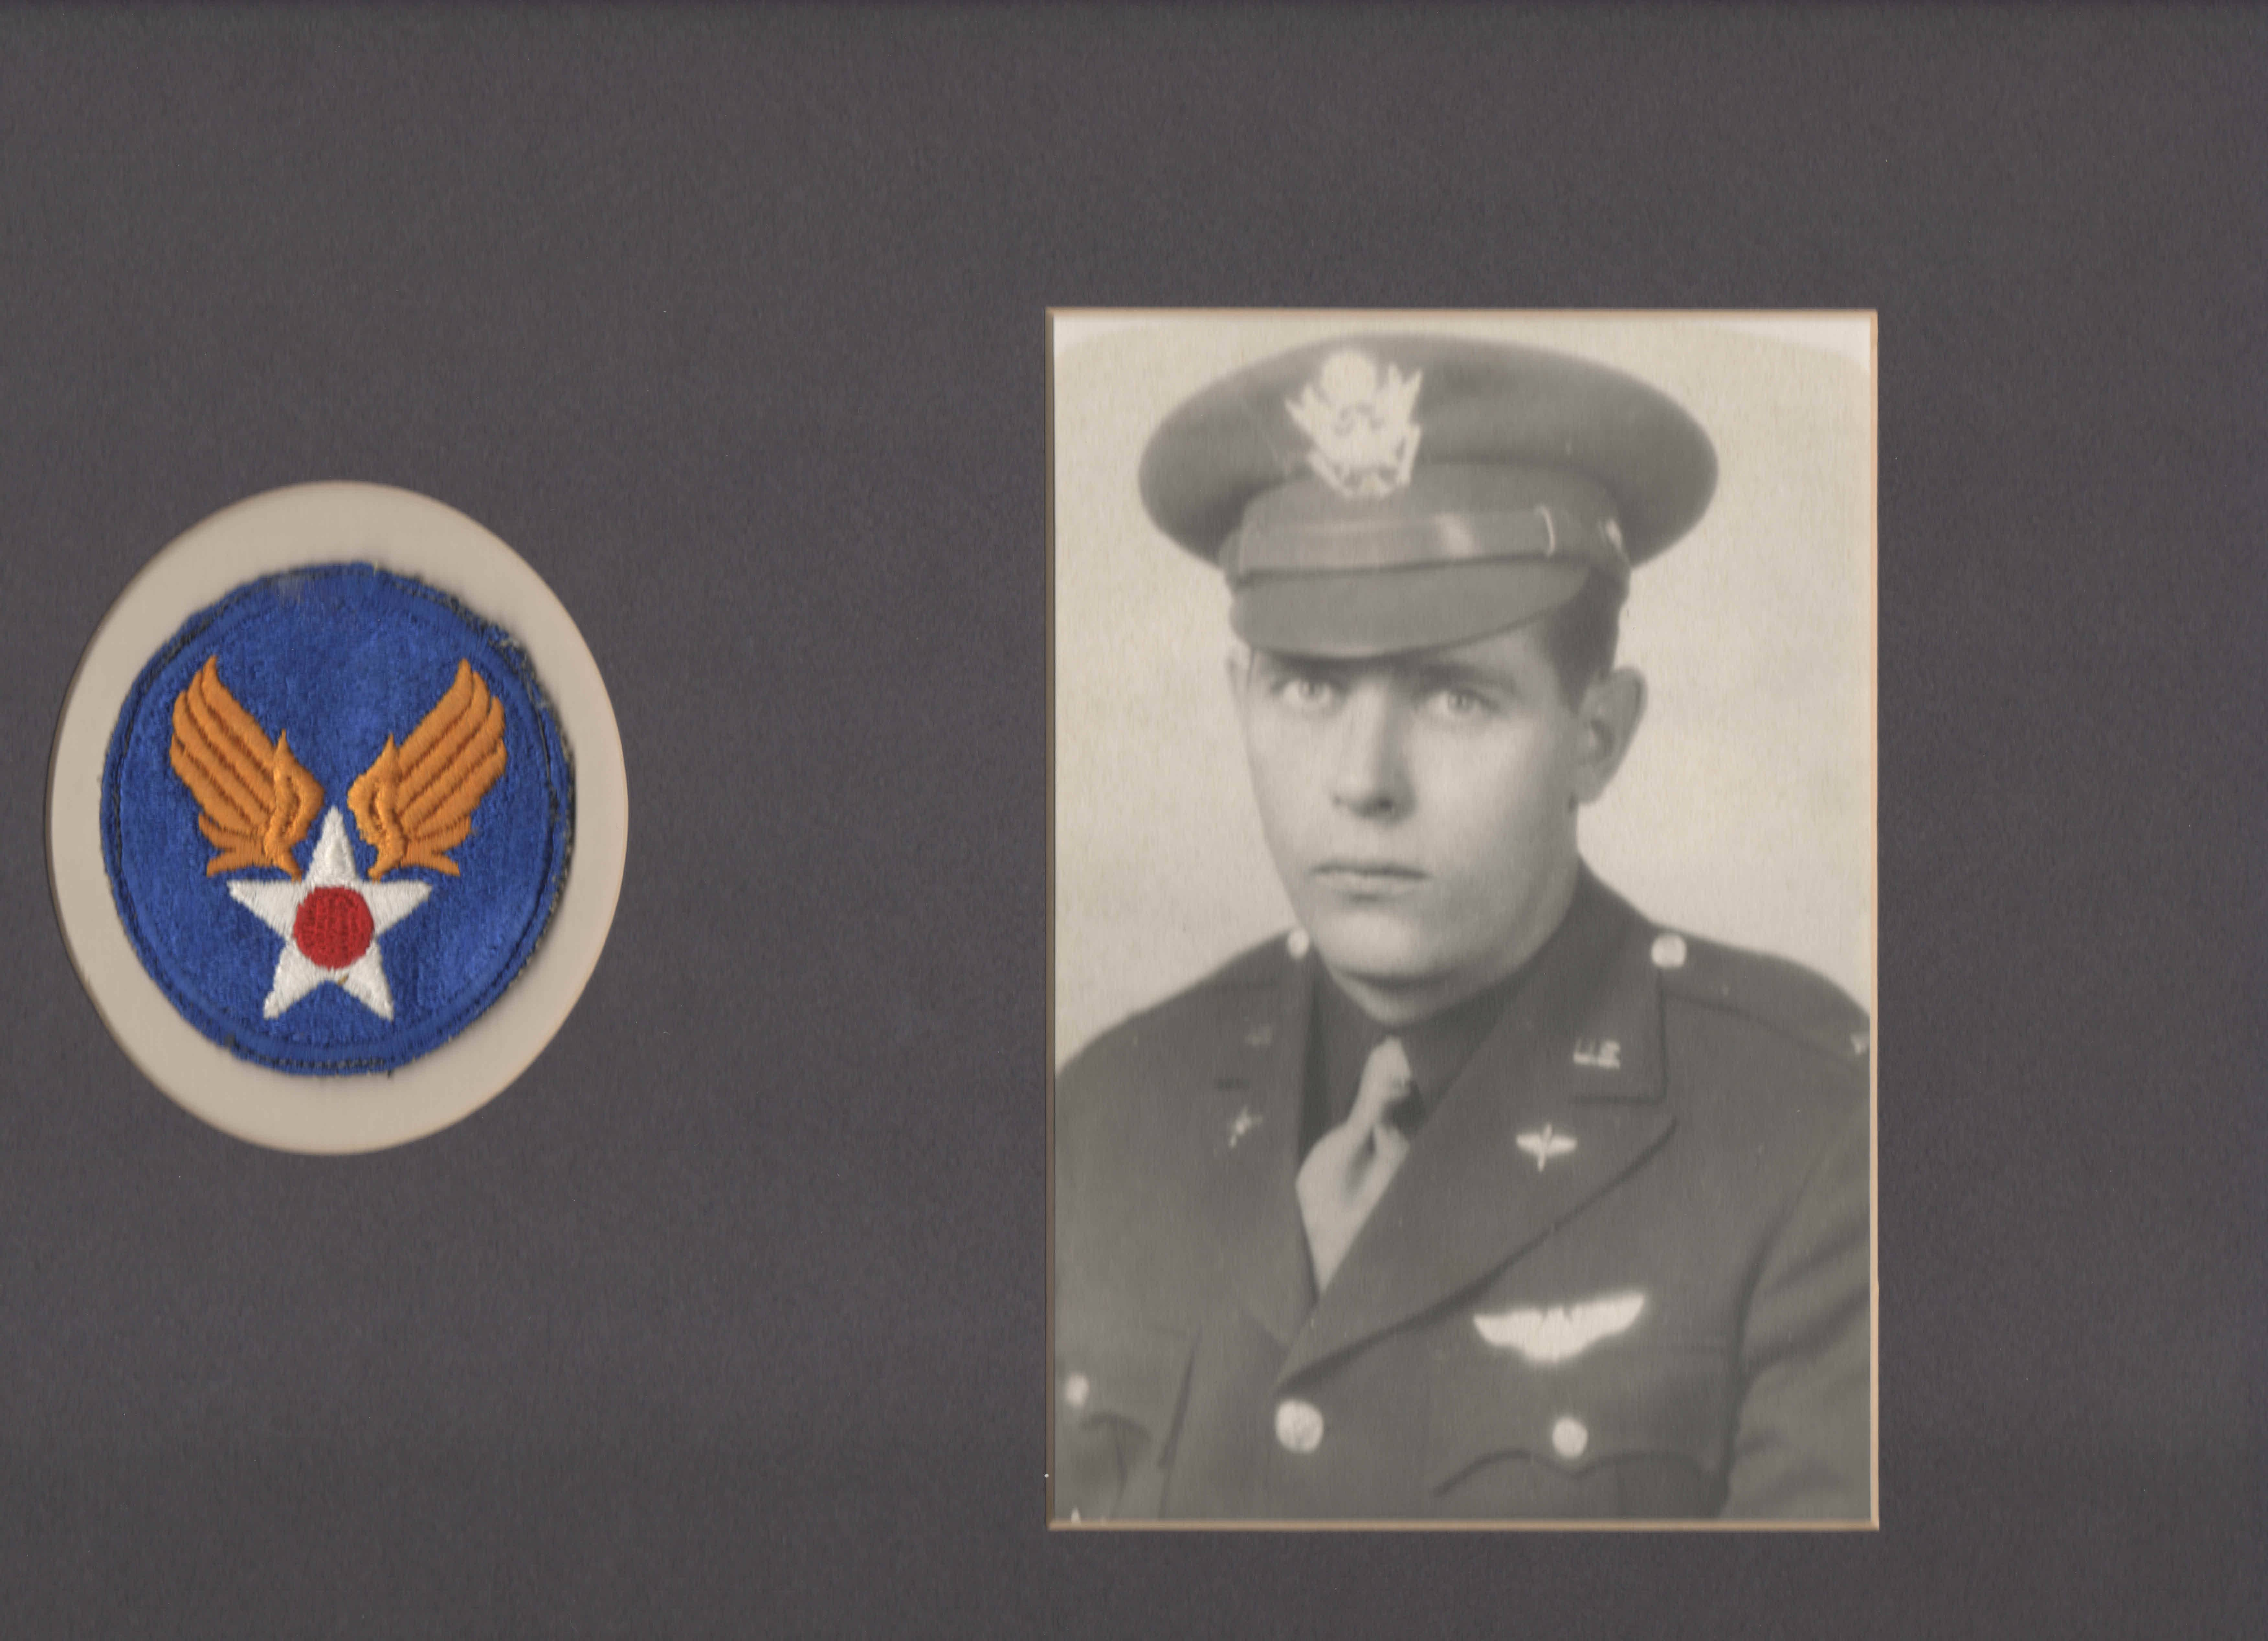 "This image shows 1st Lt. William ""Laddie"" Bernier, whose remains have been identified and will be returned to family members 70 years after his B-24 bomber was shot down over Papua New Guinea during World War II. Bernier was the bombardier, stationed in a glass cockpit in the aircraft's nose and responsible for sighting and releasing its bombs."